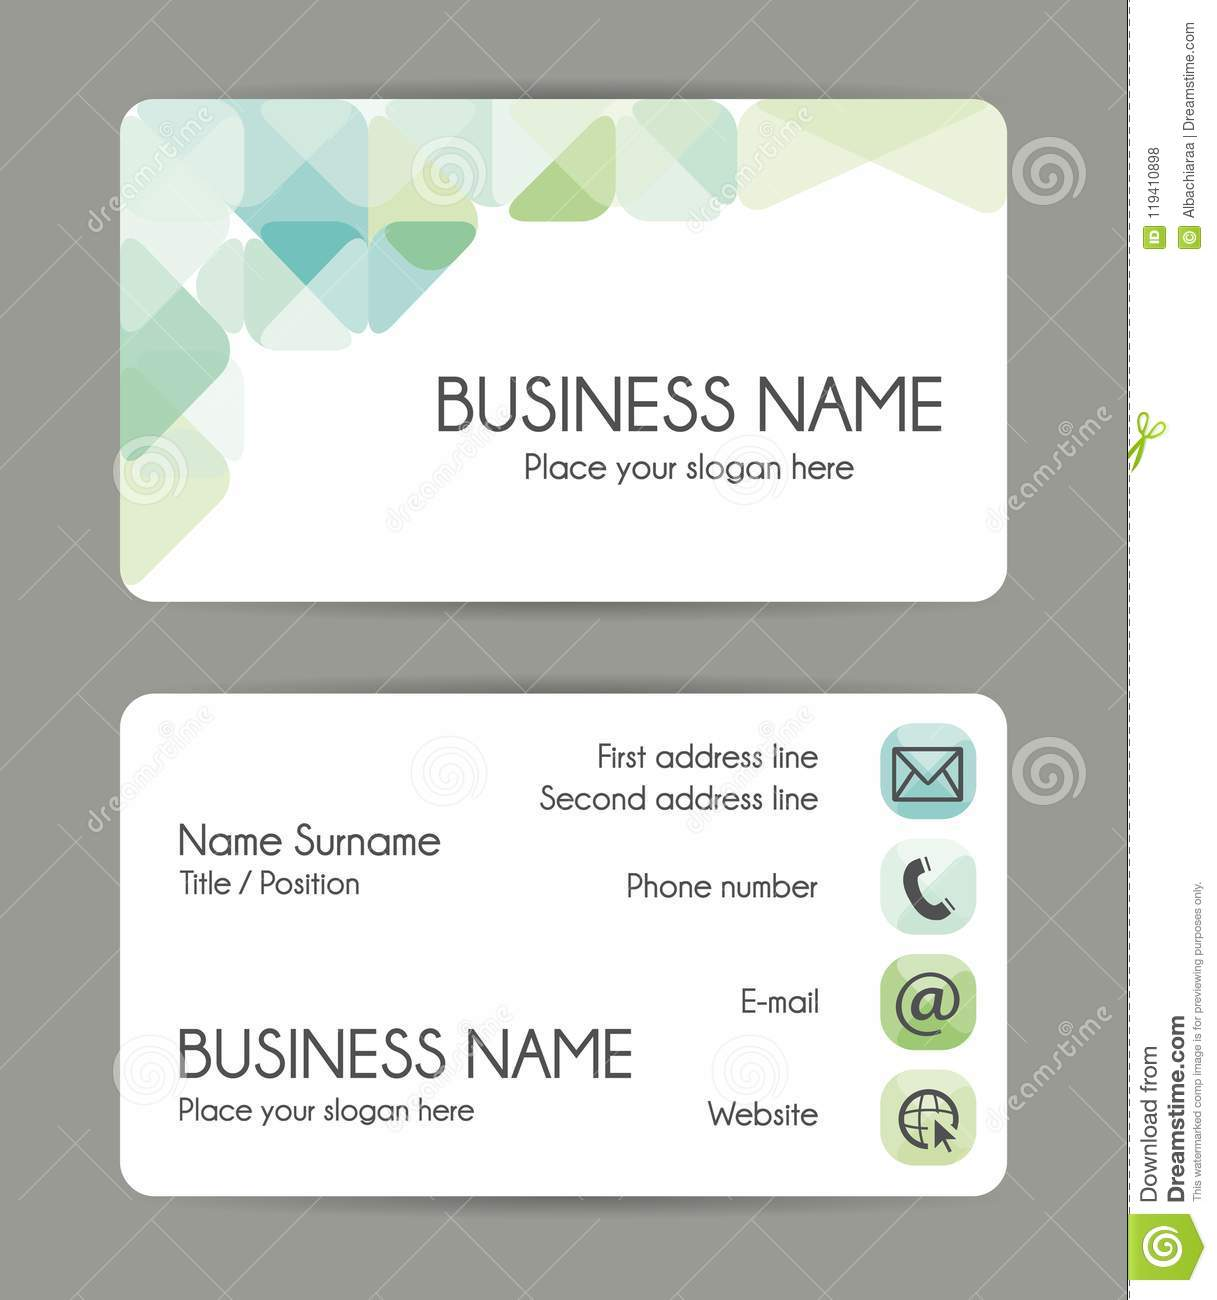 Rounded corner business card template green tones front and back download rounded corner business card template green tones front and back stock vector wajeb Image collections